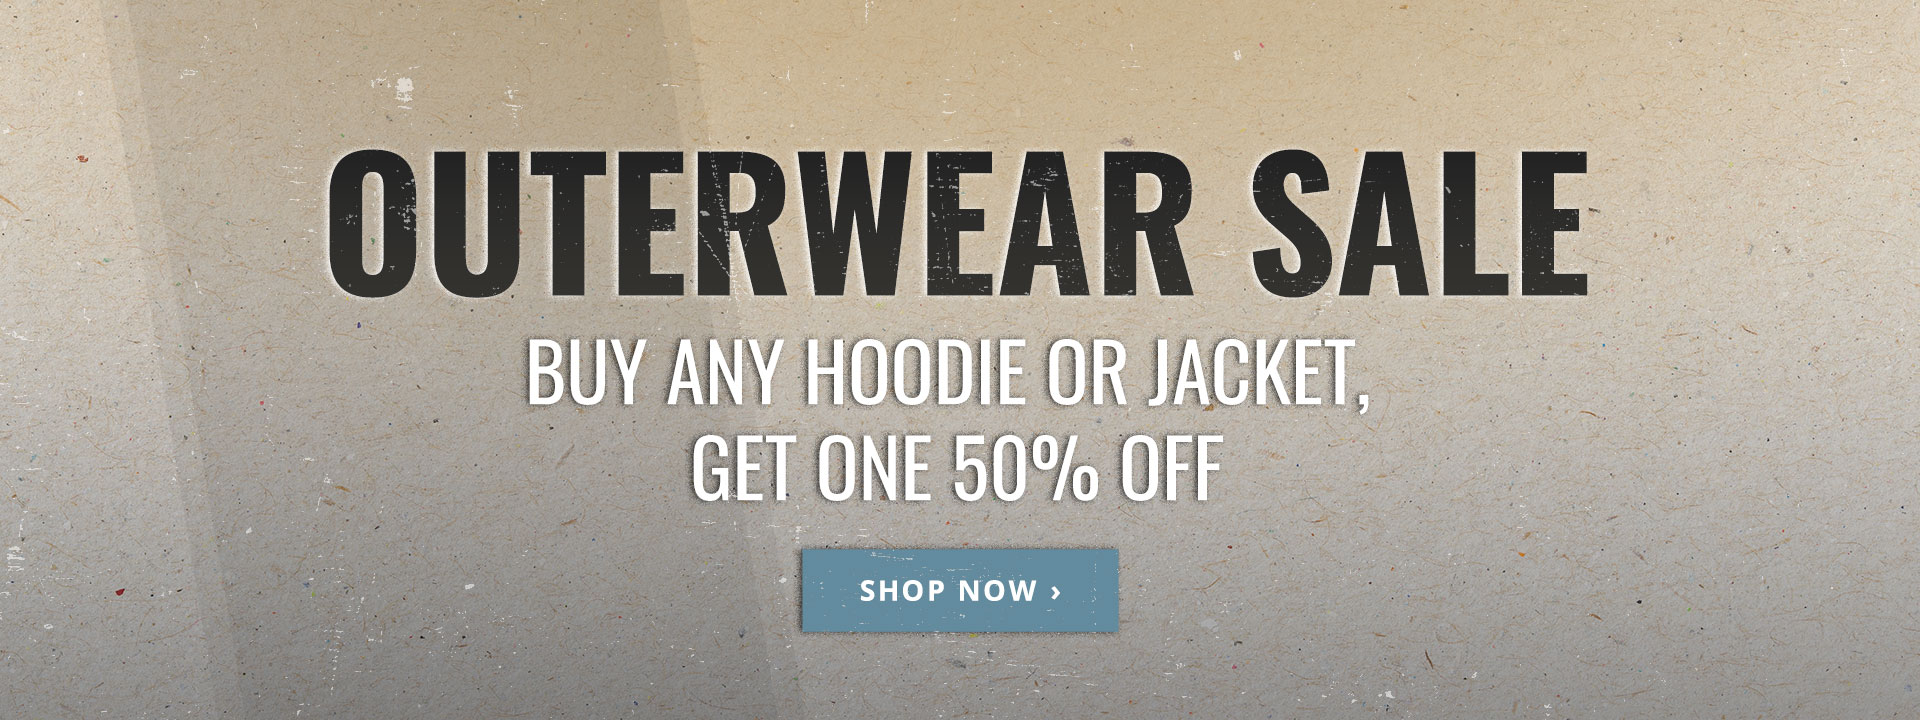 Buy One Outerwear Item, Get One 50% Off